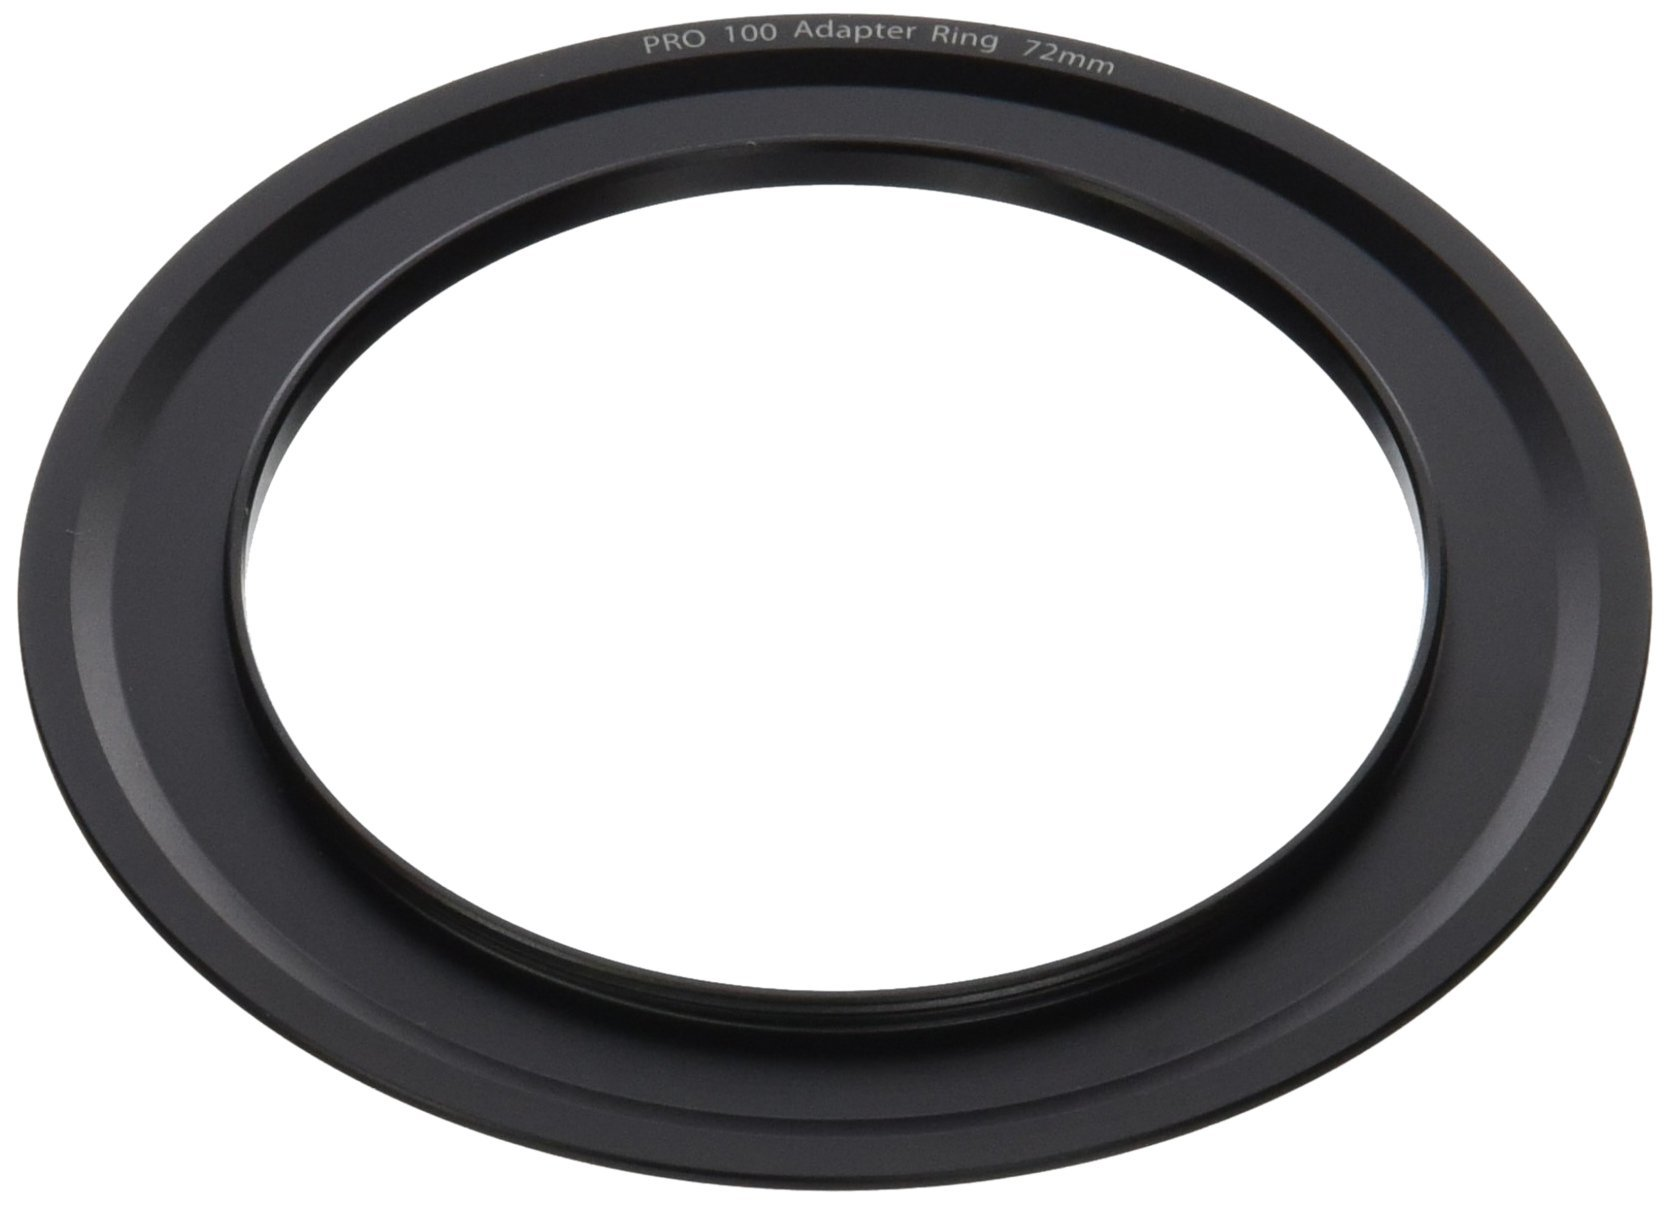 Tiffen Step Ring Camera Lens Square Filter, Black (PRO10072AR)